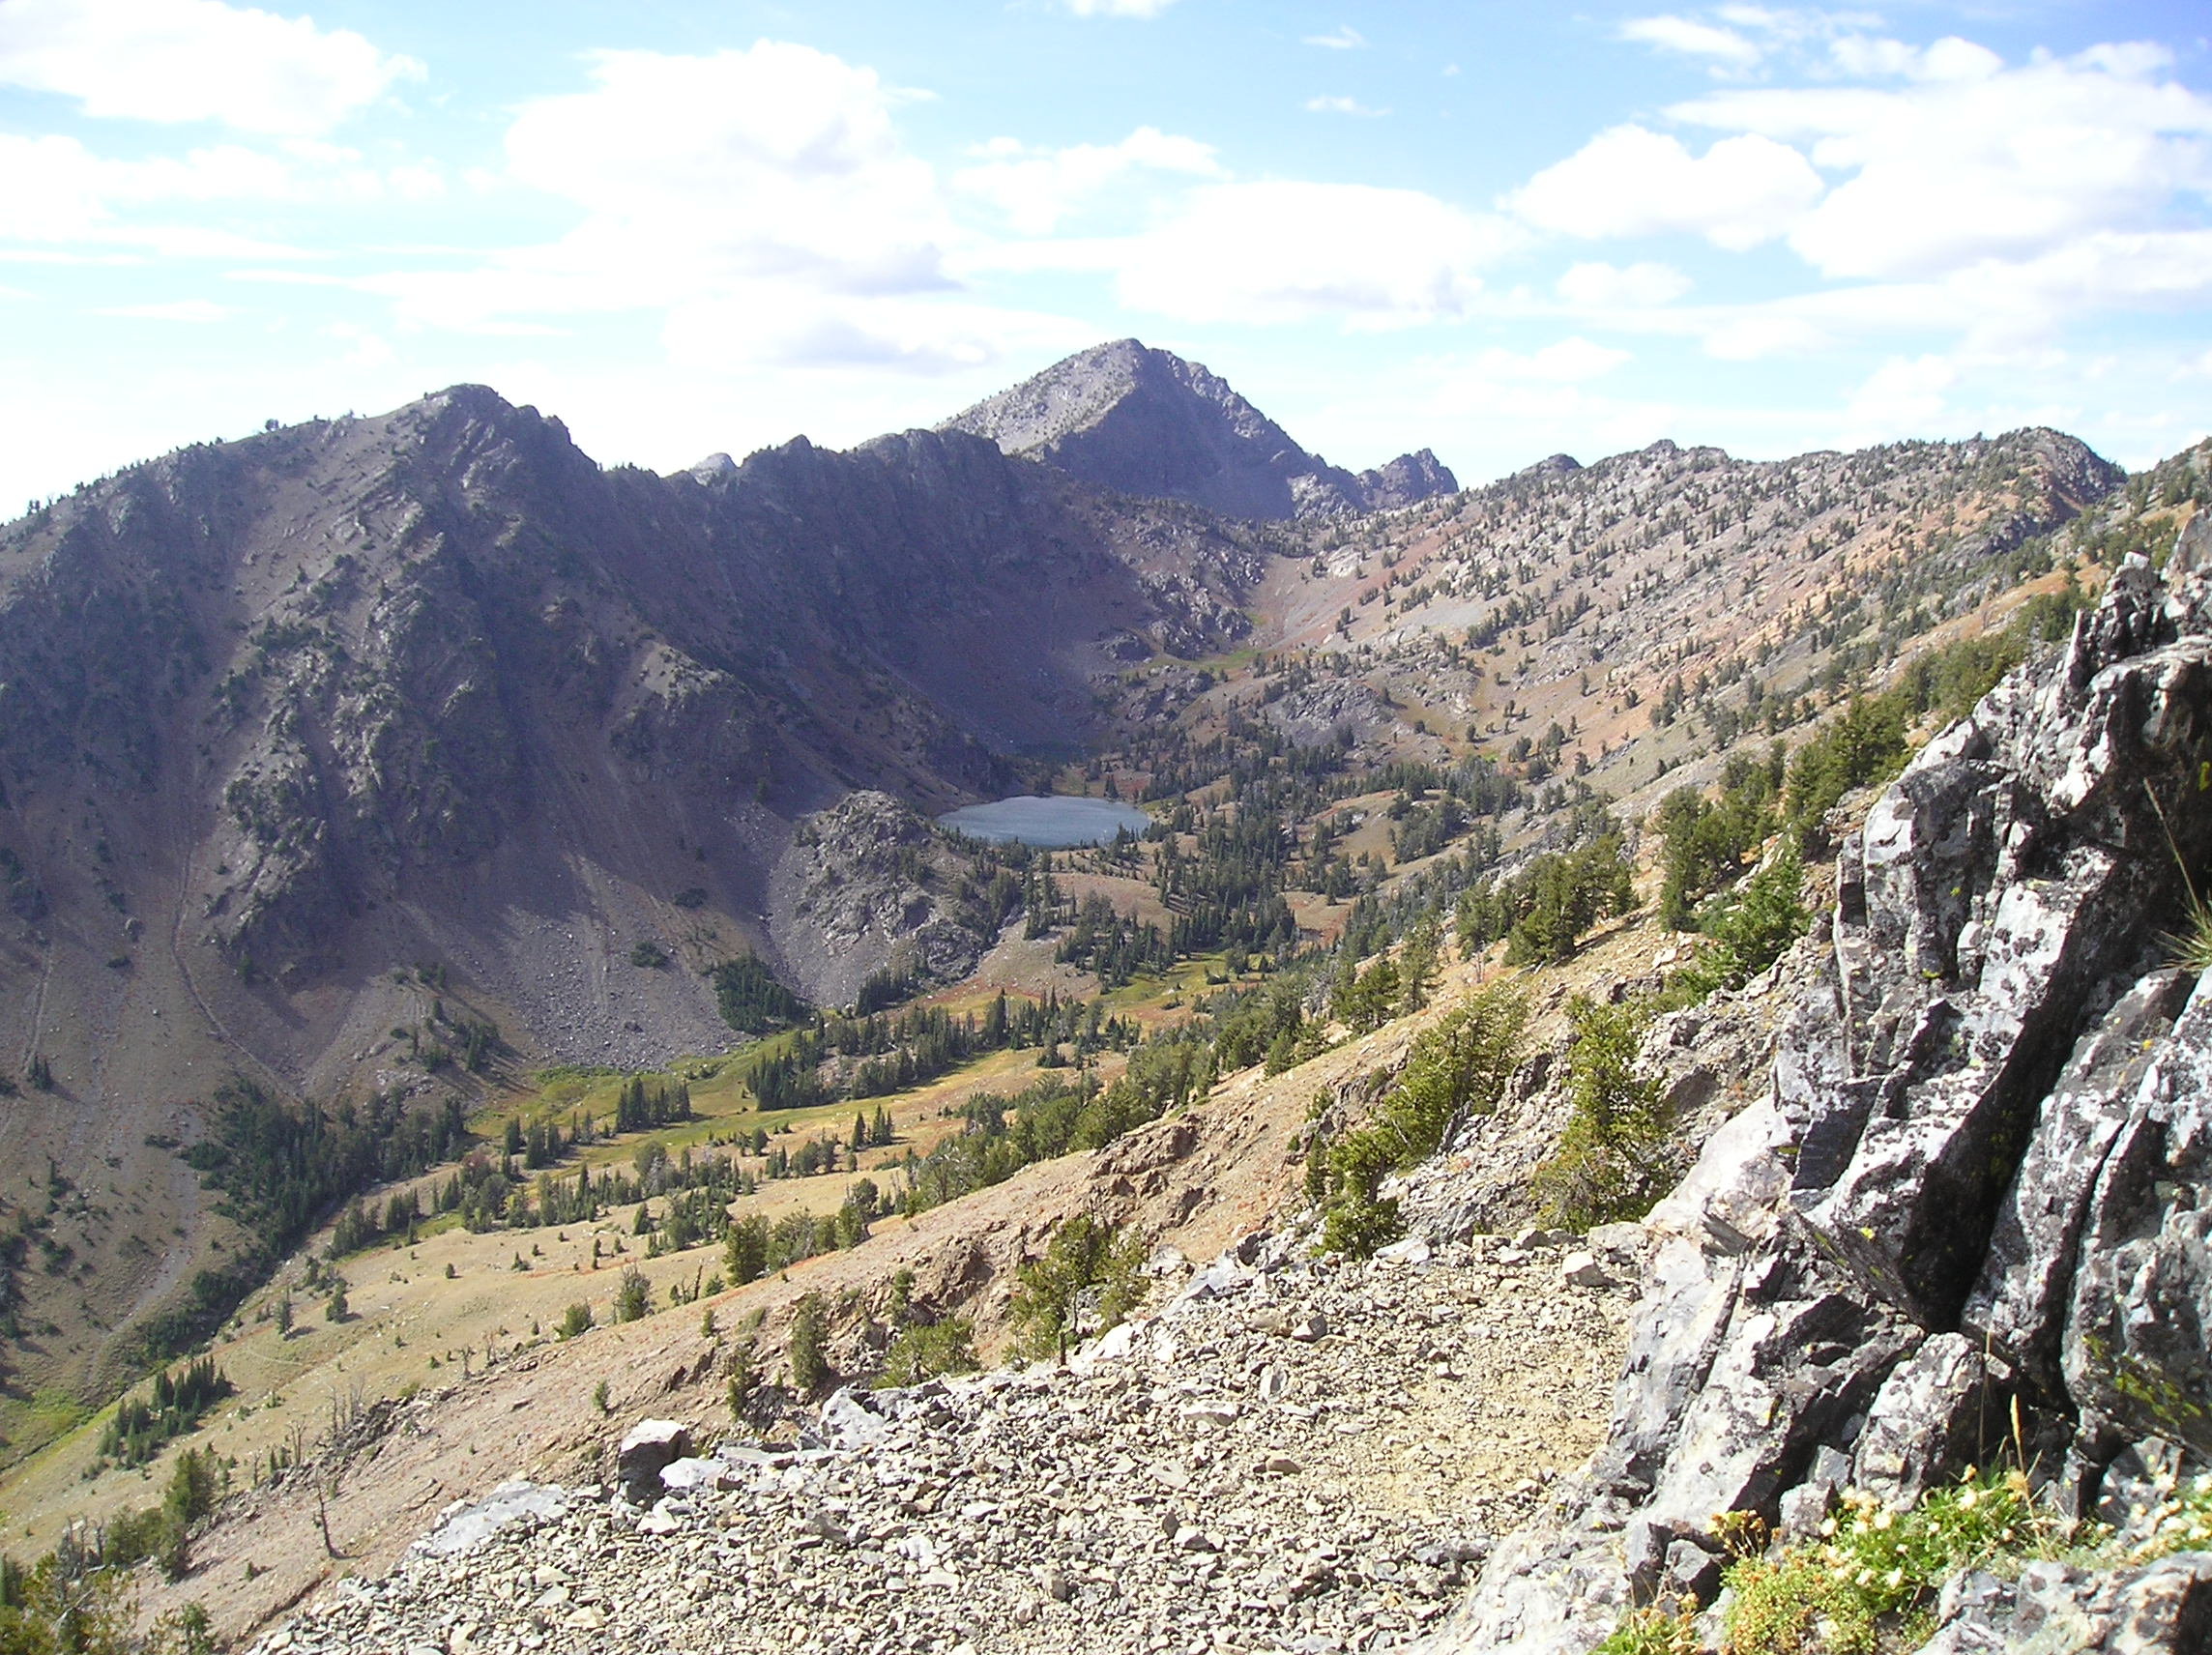 photo: HIgh mountain Twin Lakes in distance along the rugged Elkhorn Crest Trail. Photo by USDA Forest Service.